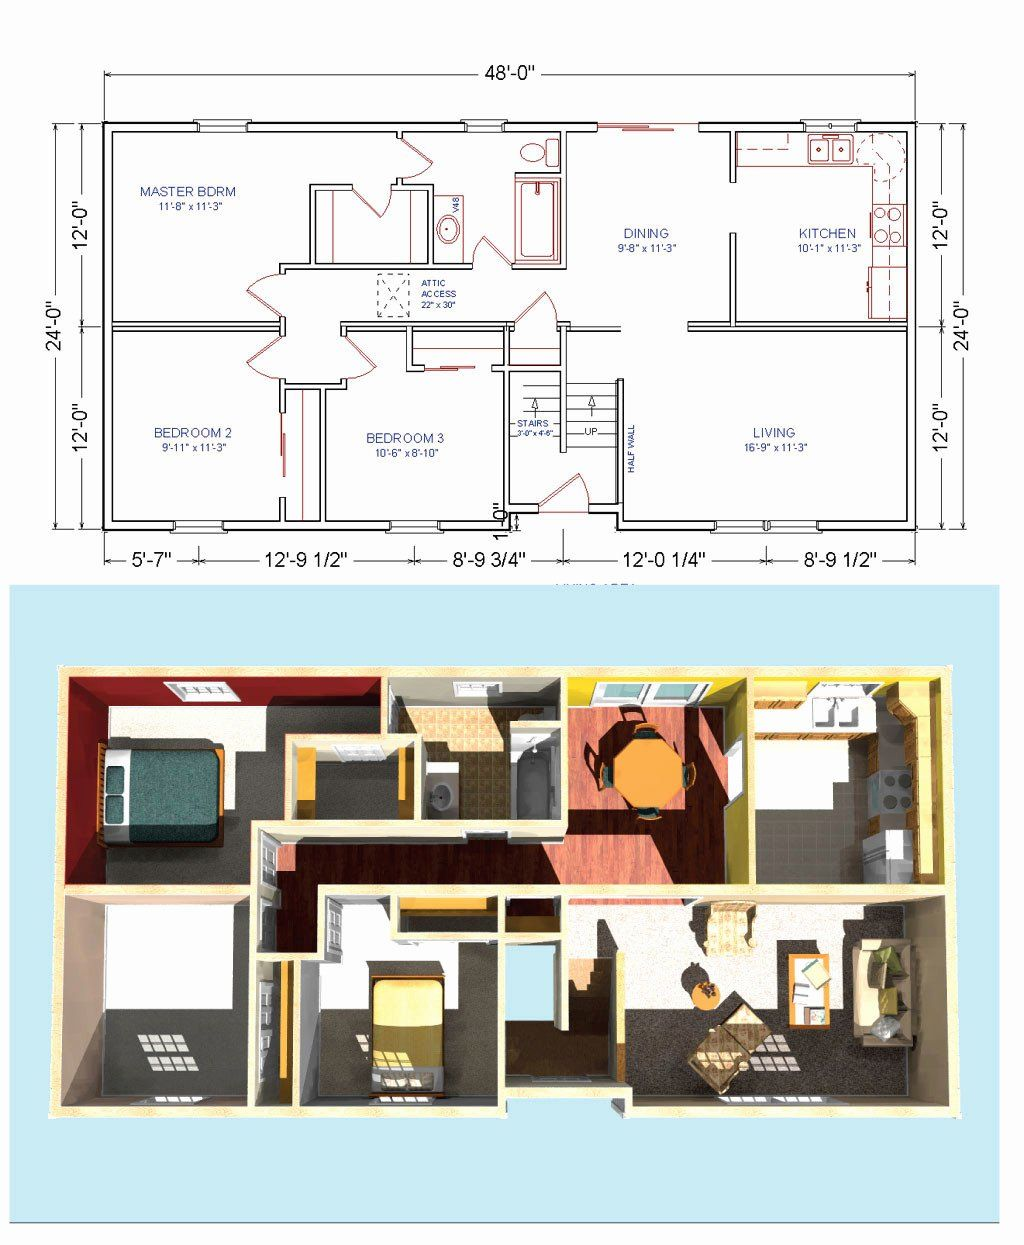 1970 Ranch House Plans New 52 Inspirational Raised Ranch Remodel Floor Plans Pic Luxury House Plans Floor Plans Ranch Basement House Plans